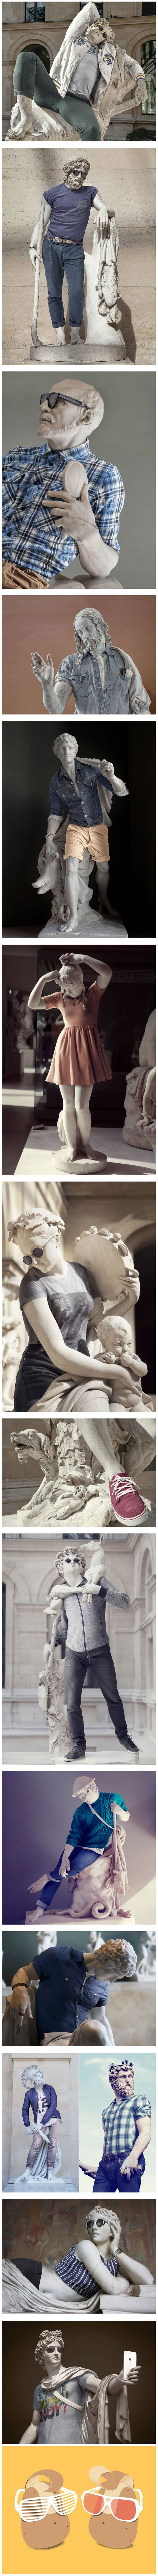 Classical Sculptures Dressed In Hipster Clothes